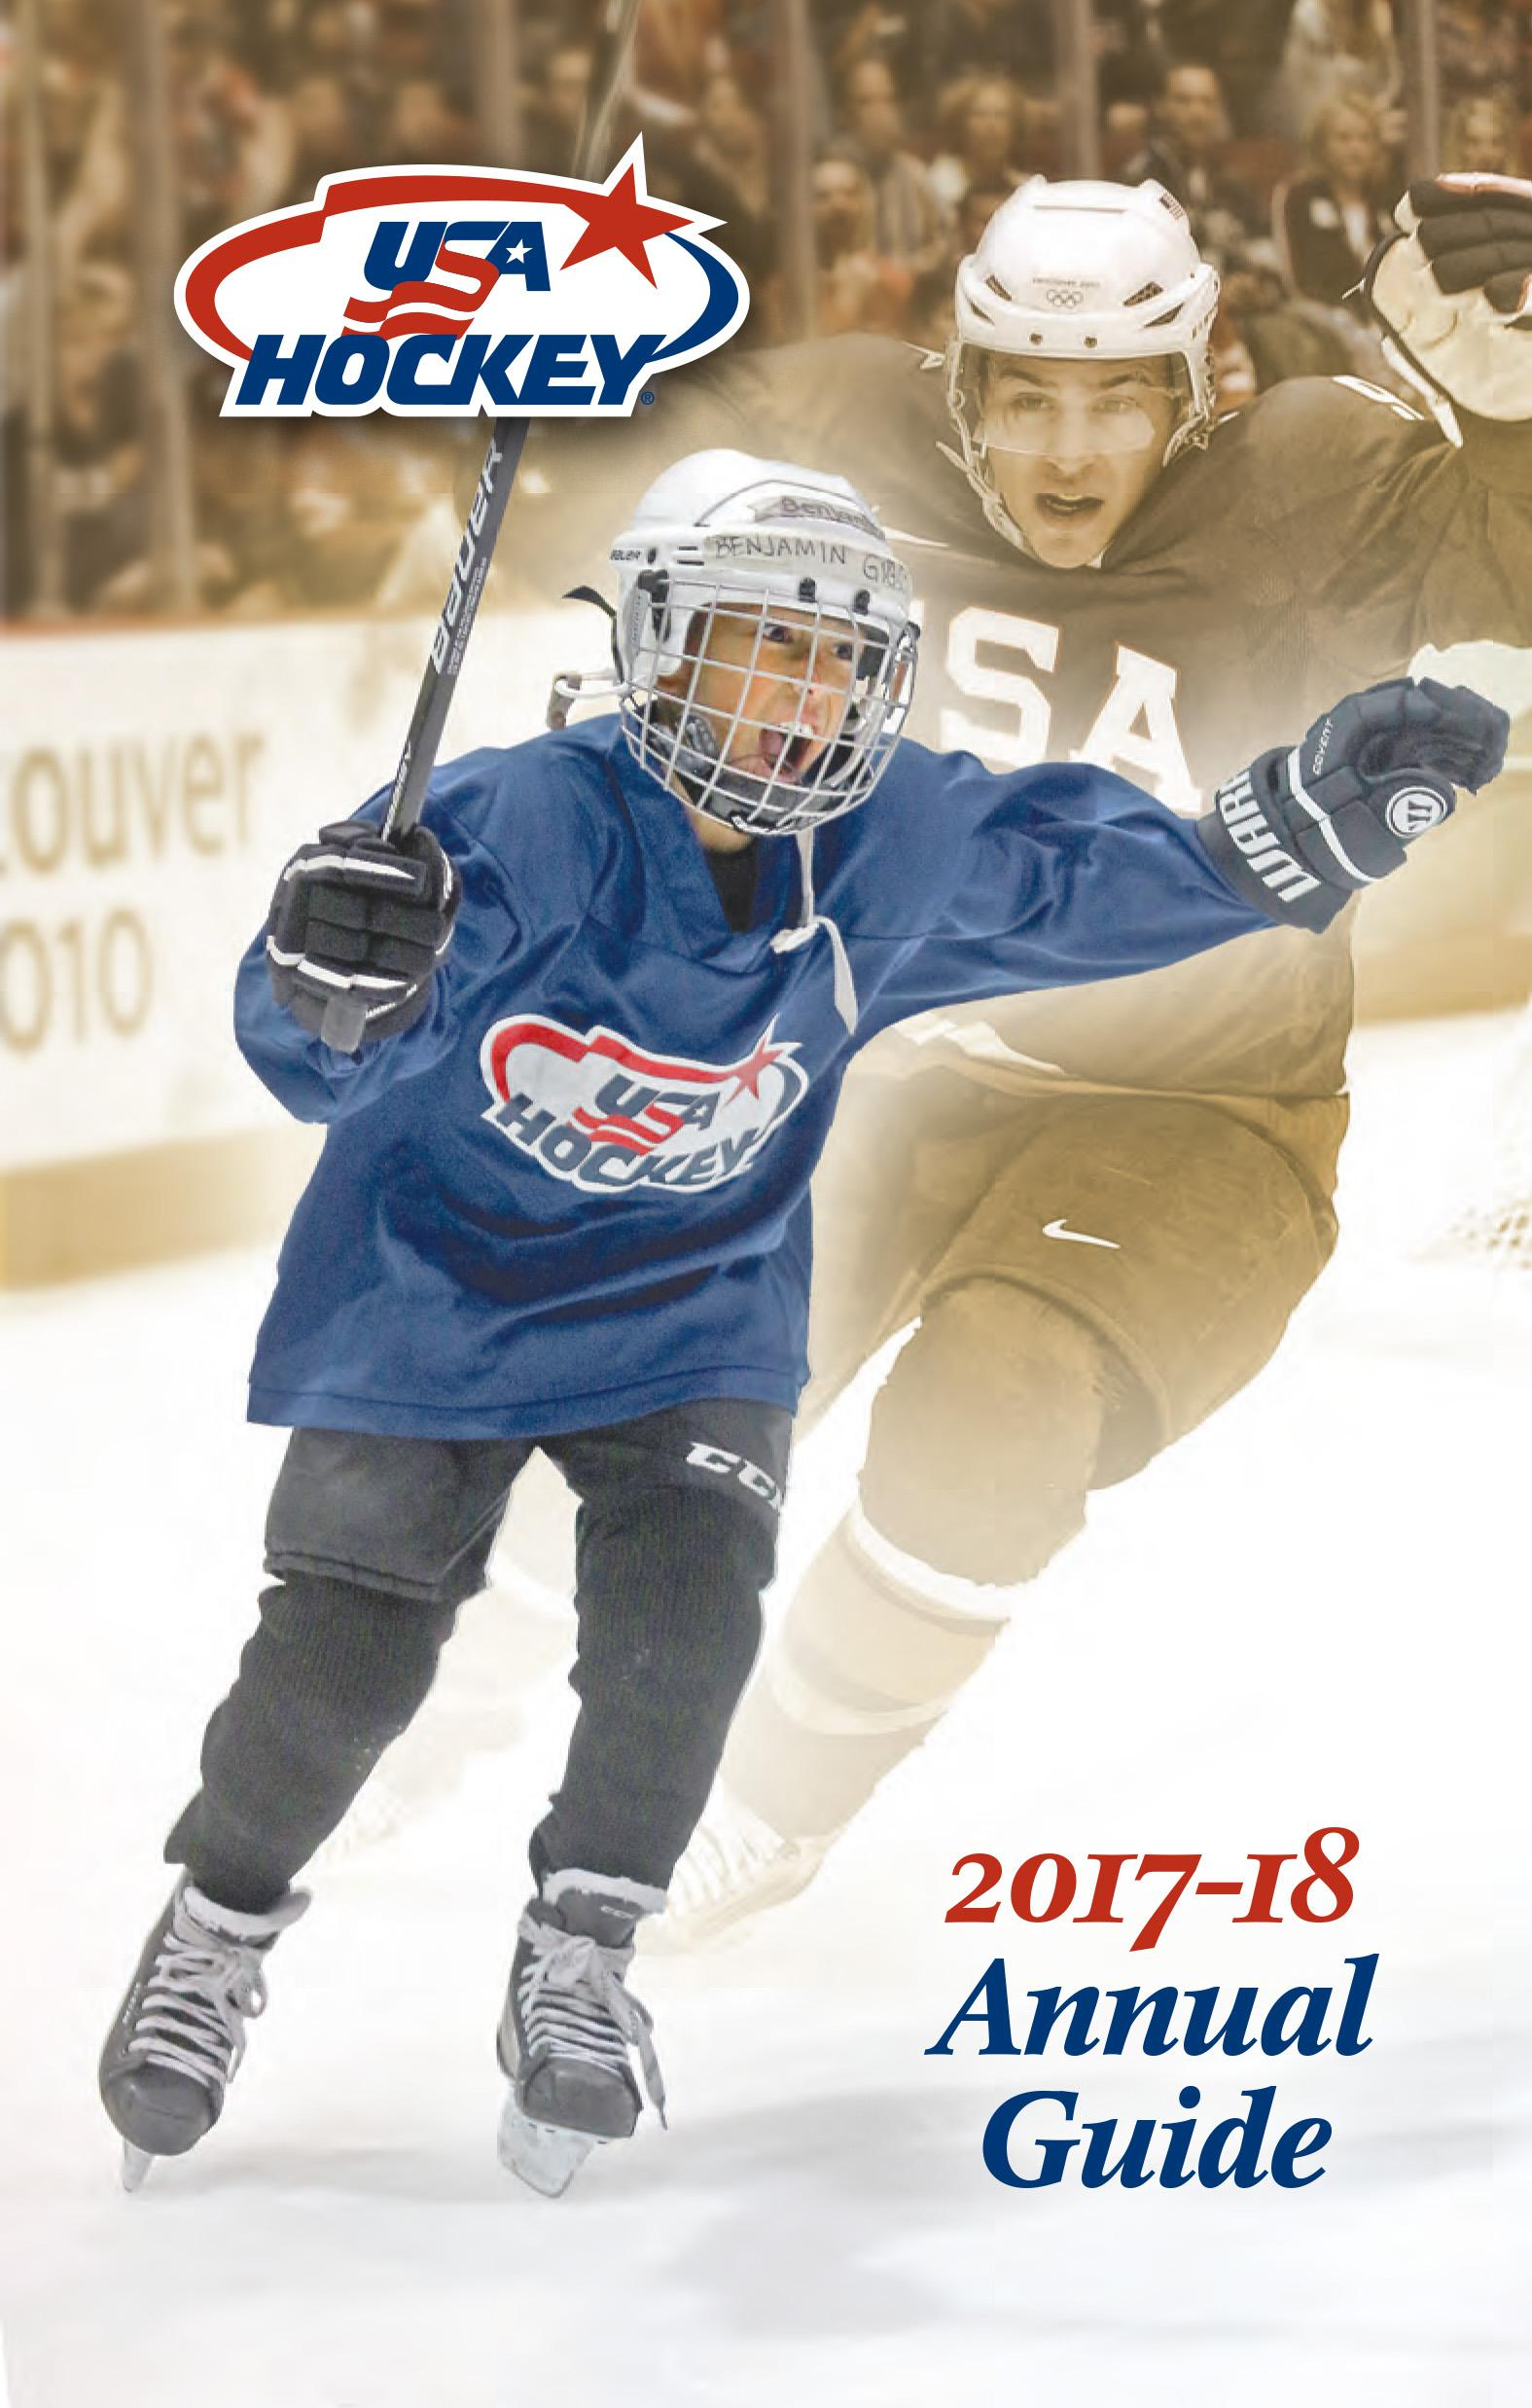 USA Hockey Annual Guide